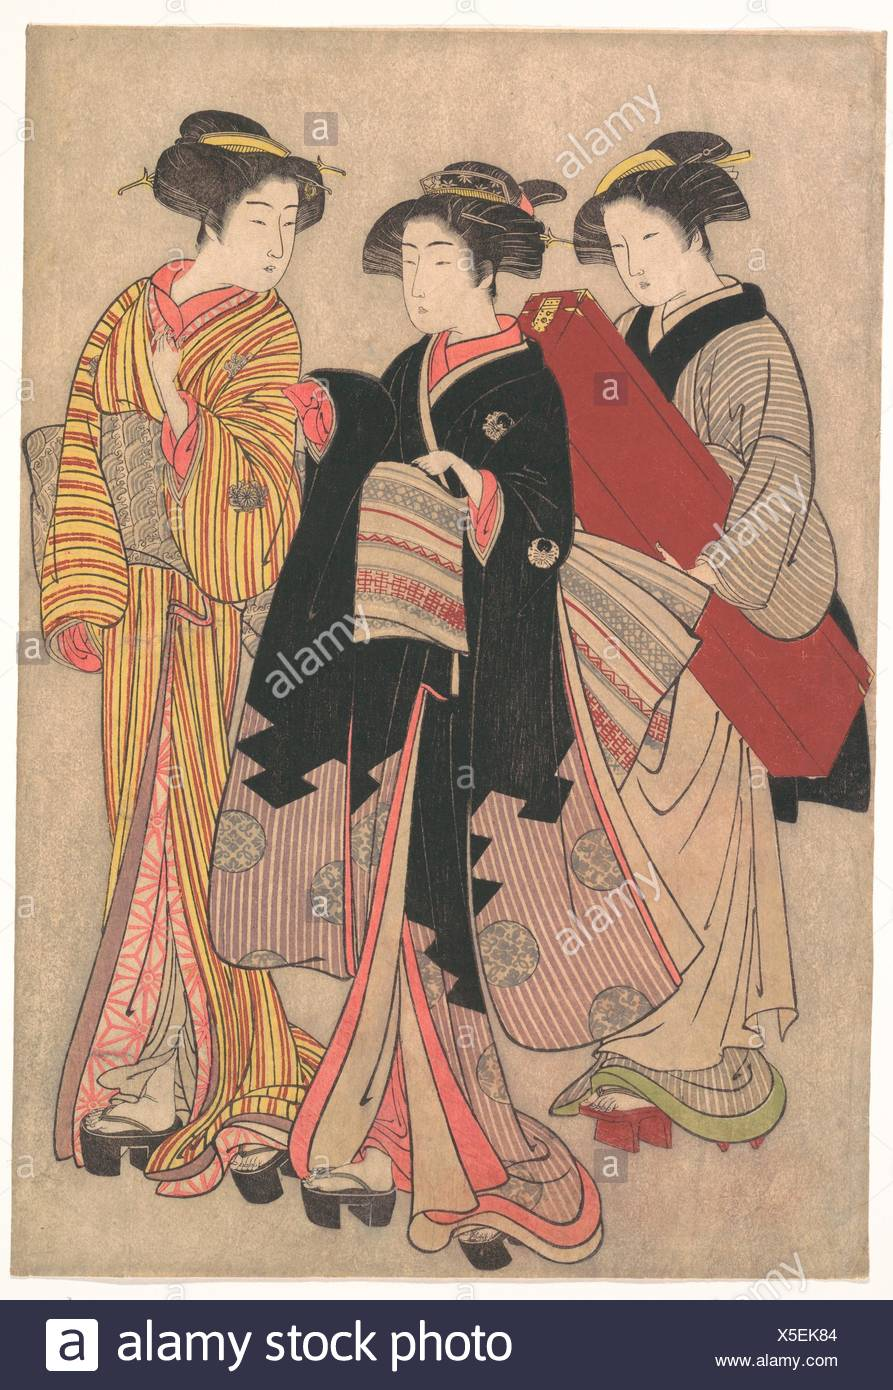 Artist: Kitao Shigemasa (Japanese, 1739-1820); Period: Edo period  (1615-1868); Date: 1739-1820; Culture: Japan; Medium: